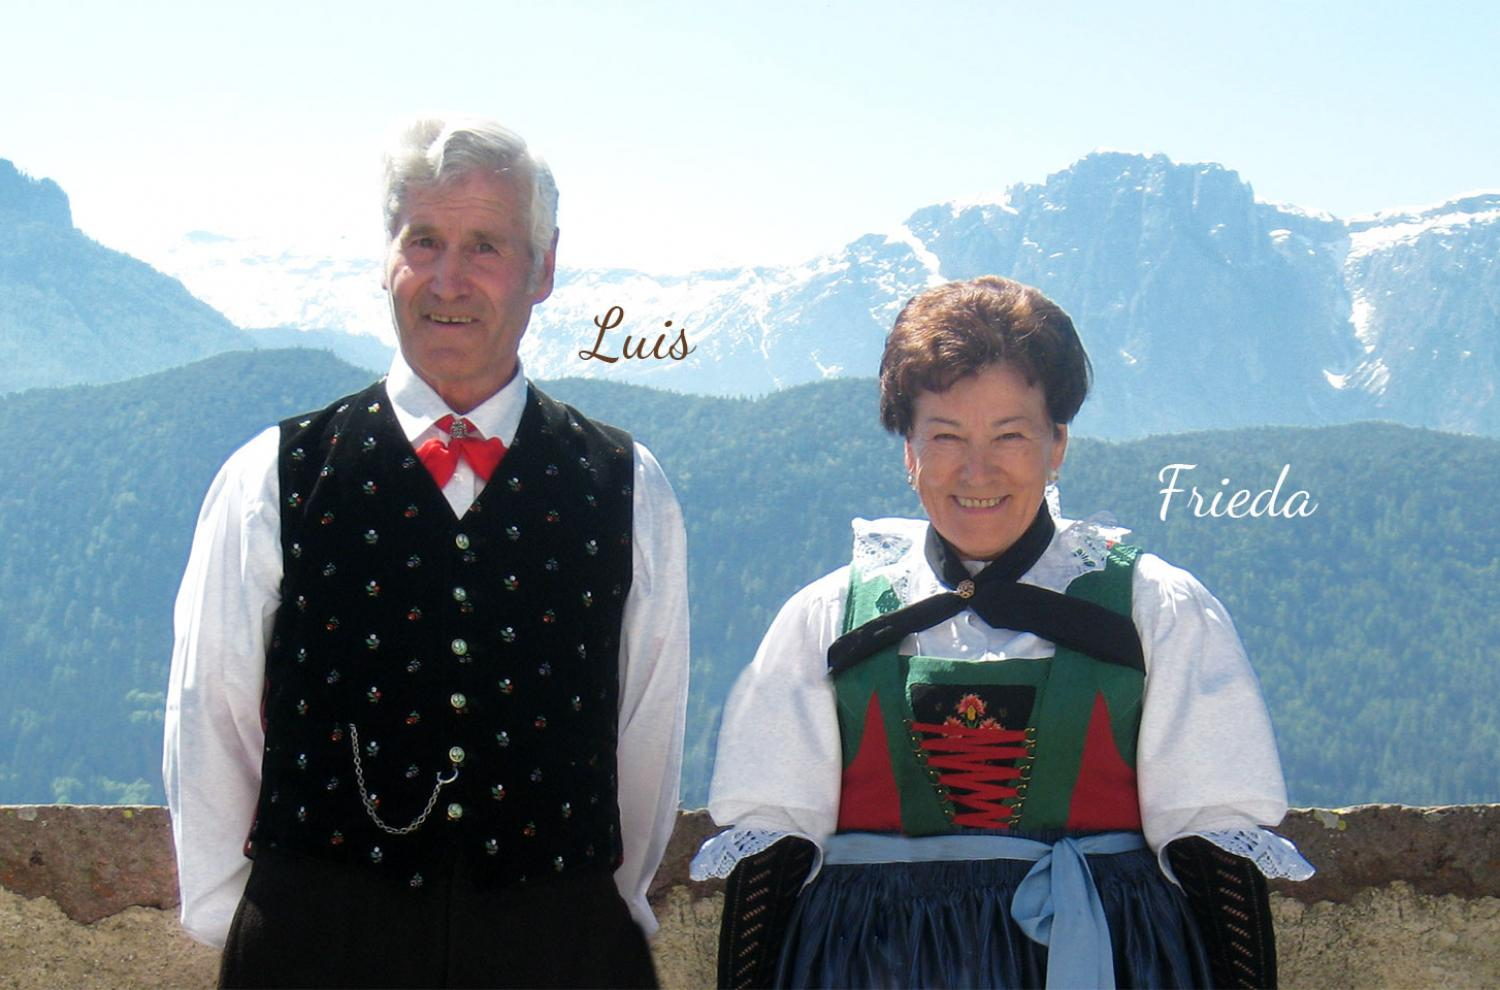 Luis and Frieda